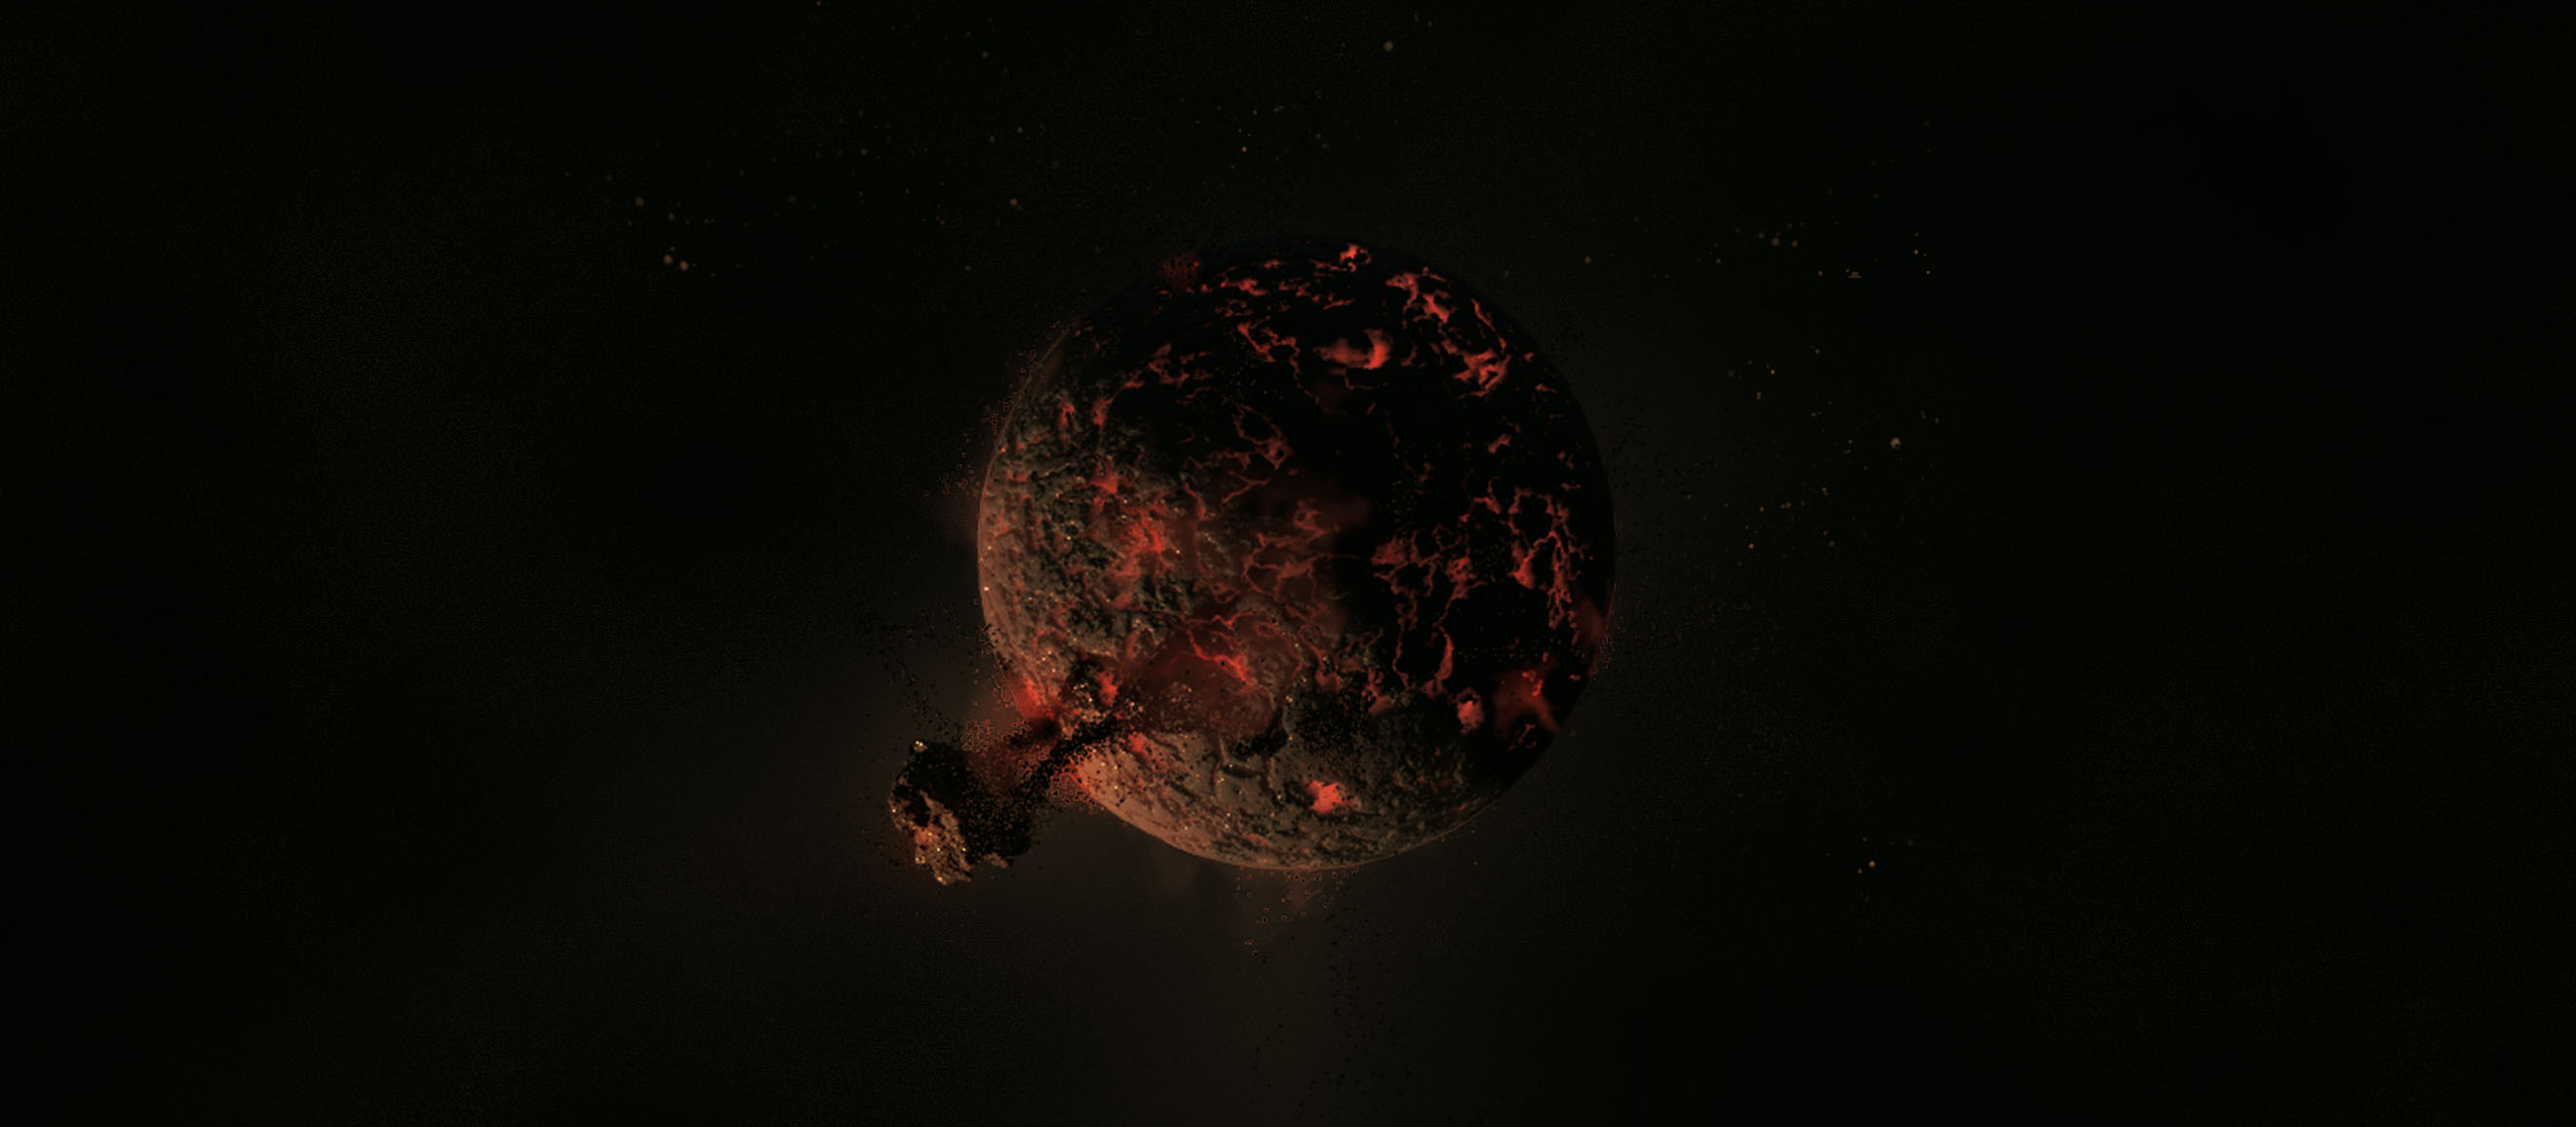 planet_lighting_WIP_03_v001.jpg